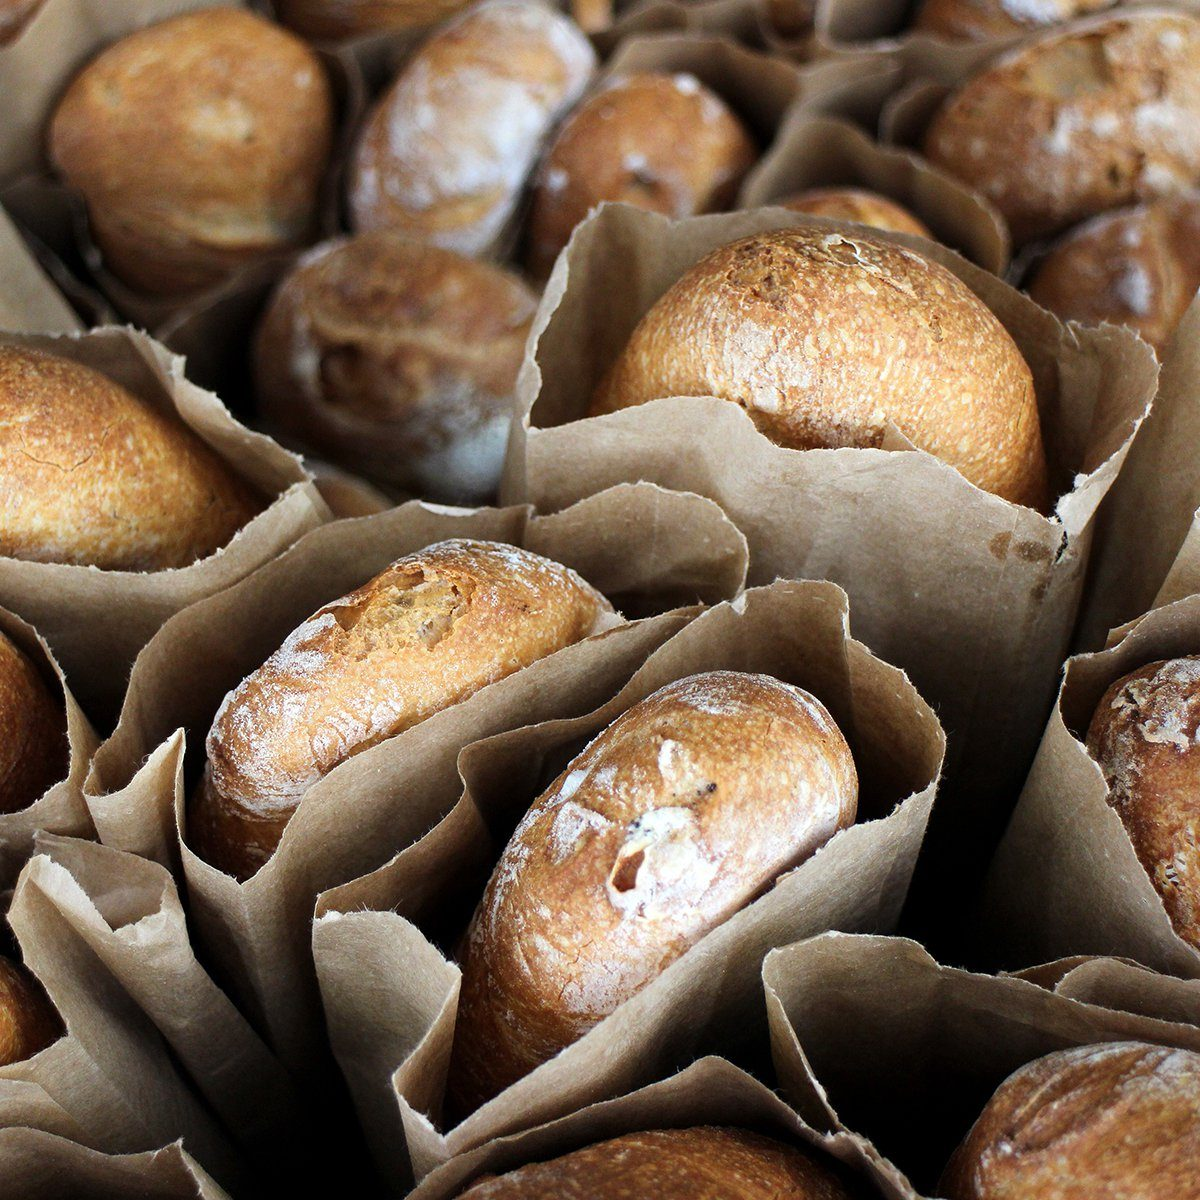 fresh baked breads in market place